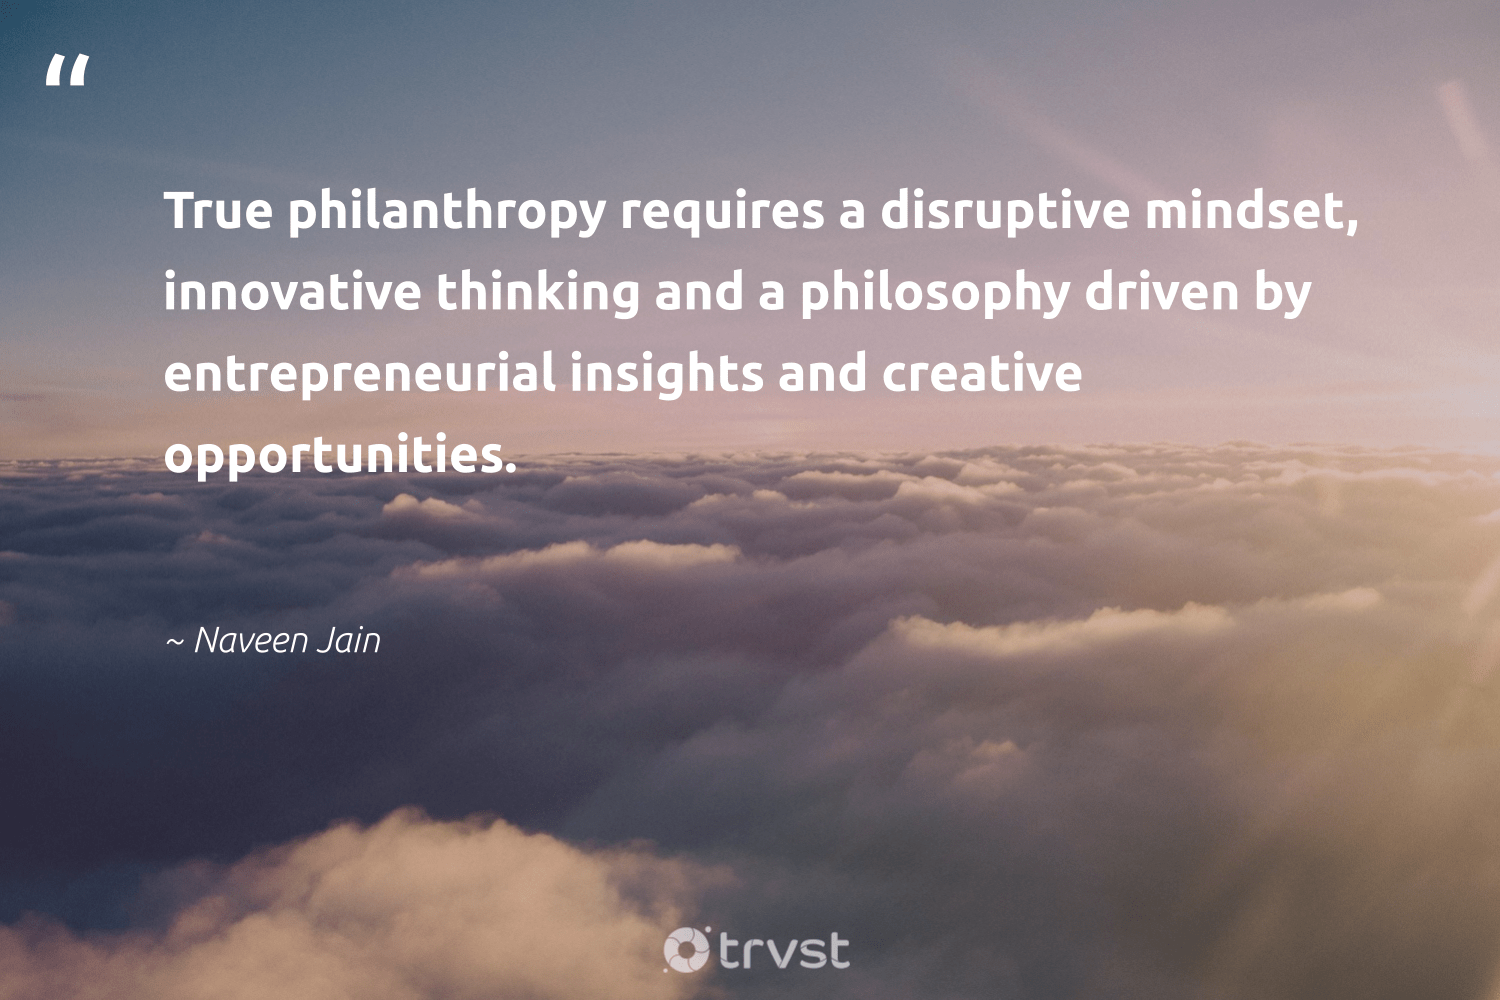 """""""True philanthropy requires a disruptive mindset, innovative thinking and a philosophy driven by entrepreneurial insights and creative opportunities.""""  - Naveen Jain #trvst #quotes #mindset #creative #philanthropy #growthmindset #changemakers #begreat #socialimpact #motivation #health #nevergiveup"""